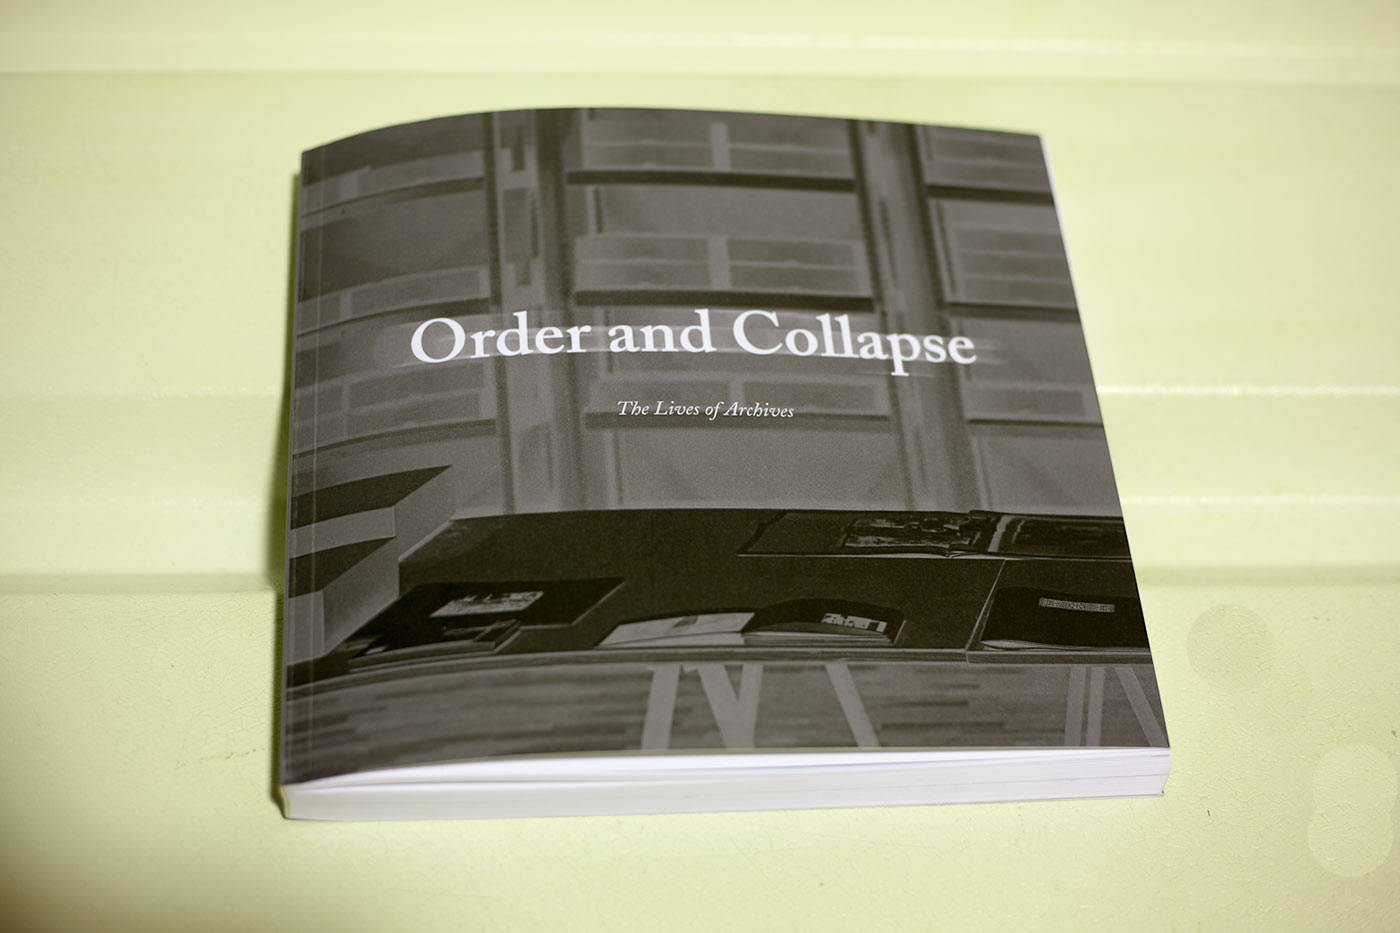 order-and-collapse-the-lives-of-archives-1